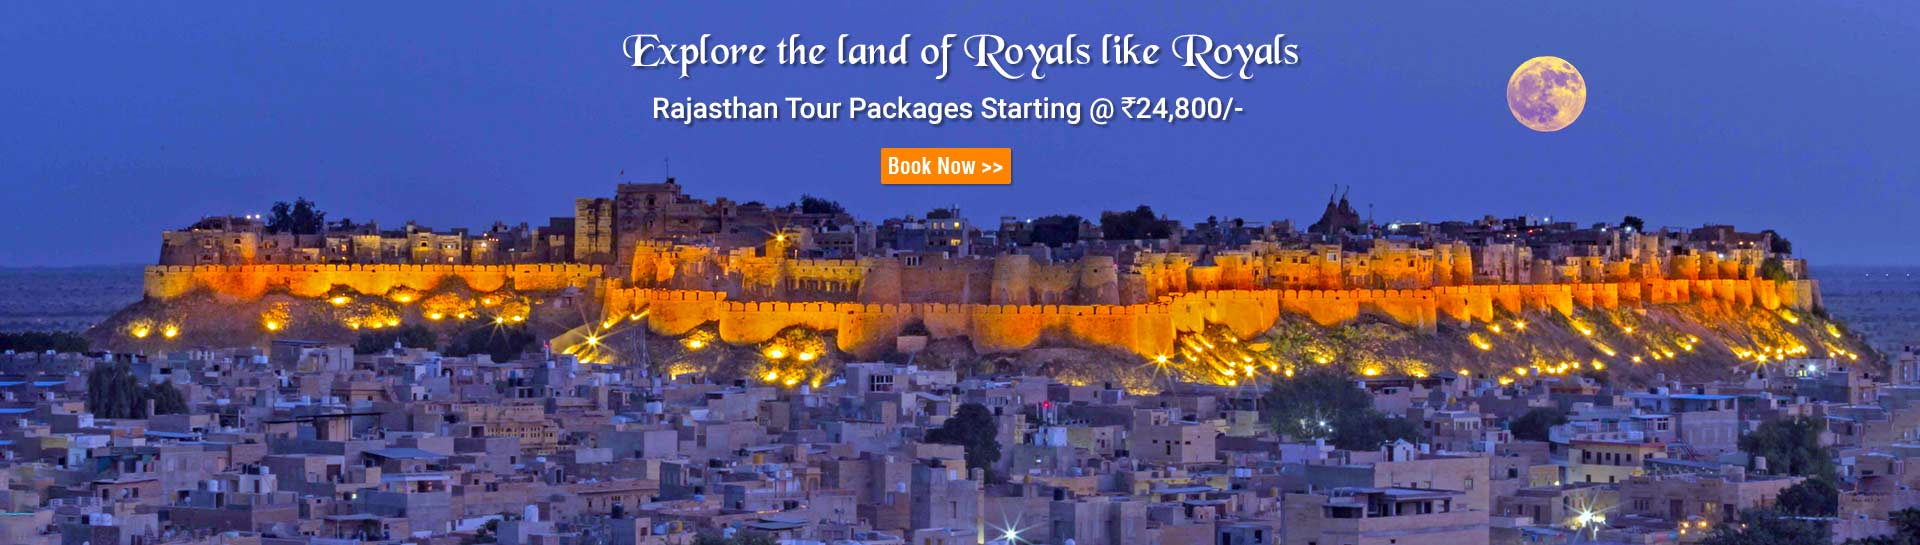 Visit our website: SOTC for Holidays - Banjara Hills, Hyderabad